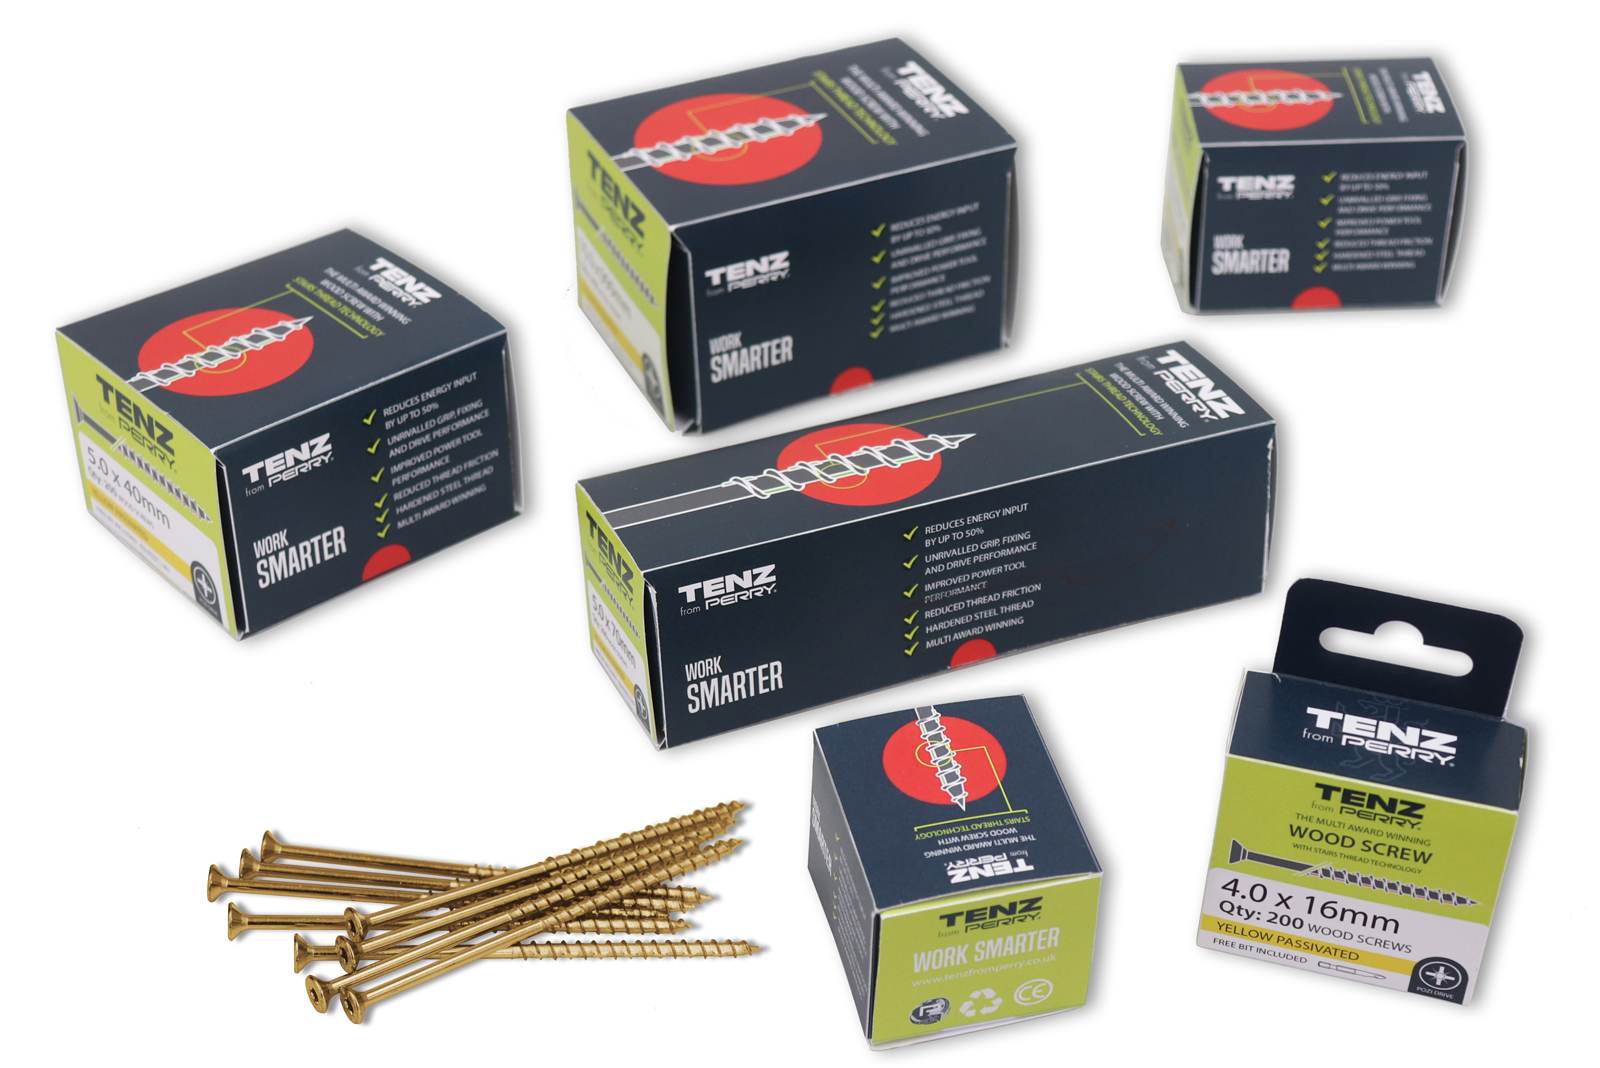 10 boxes of Tenz High Performance Woodscrews to win